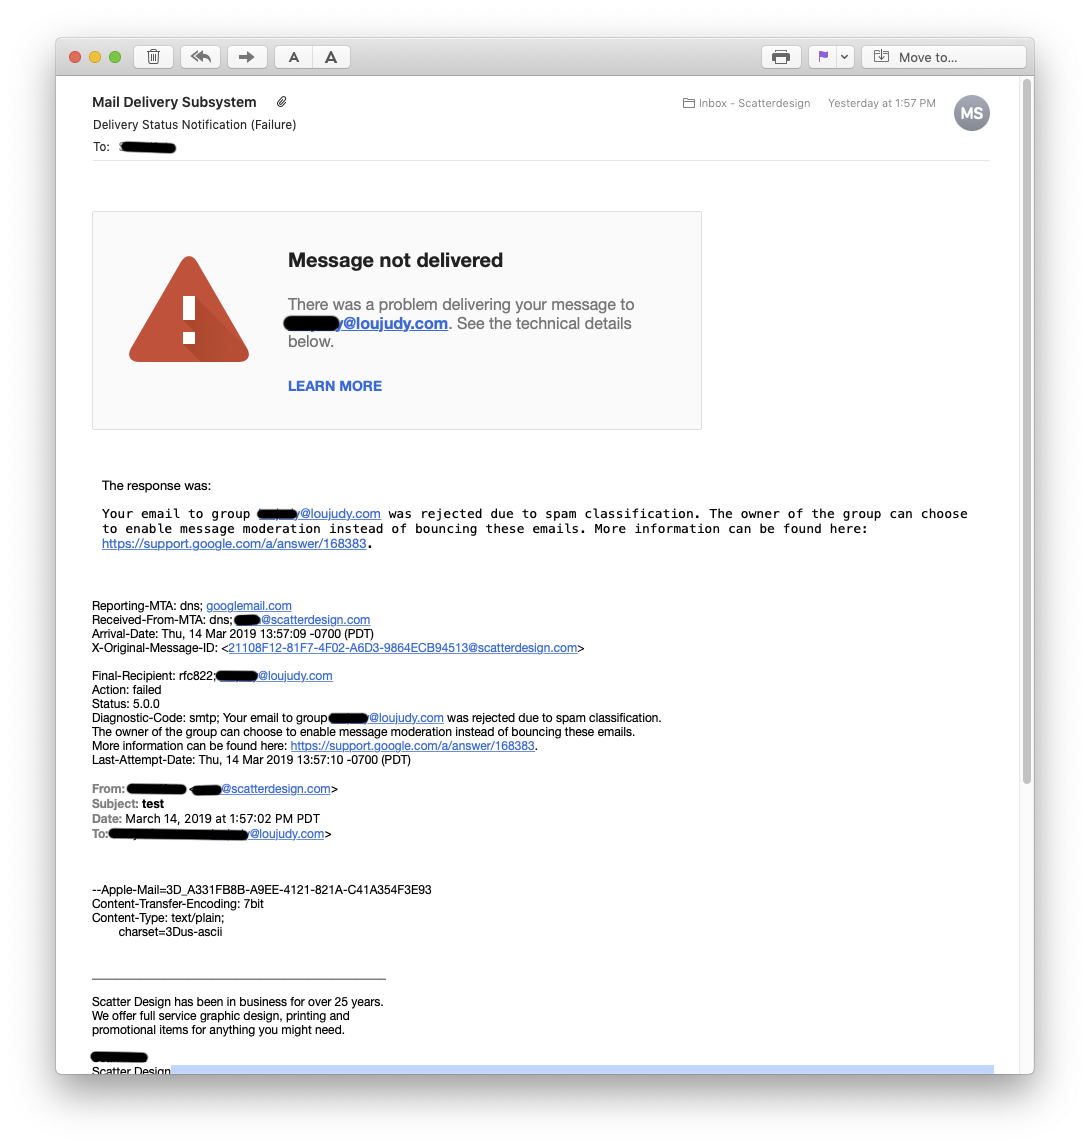 Legacy free edition of G Suite rejecting due to spam